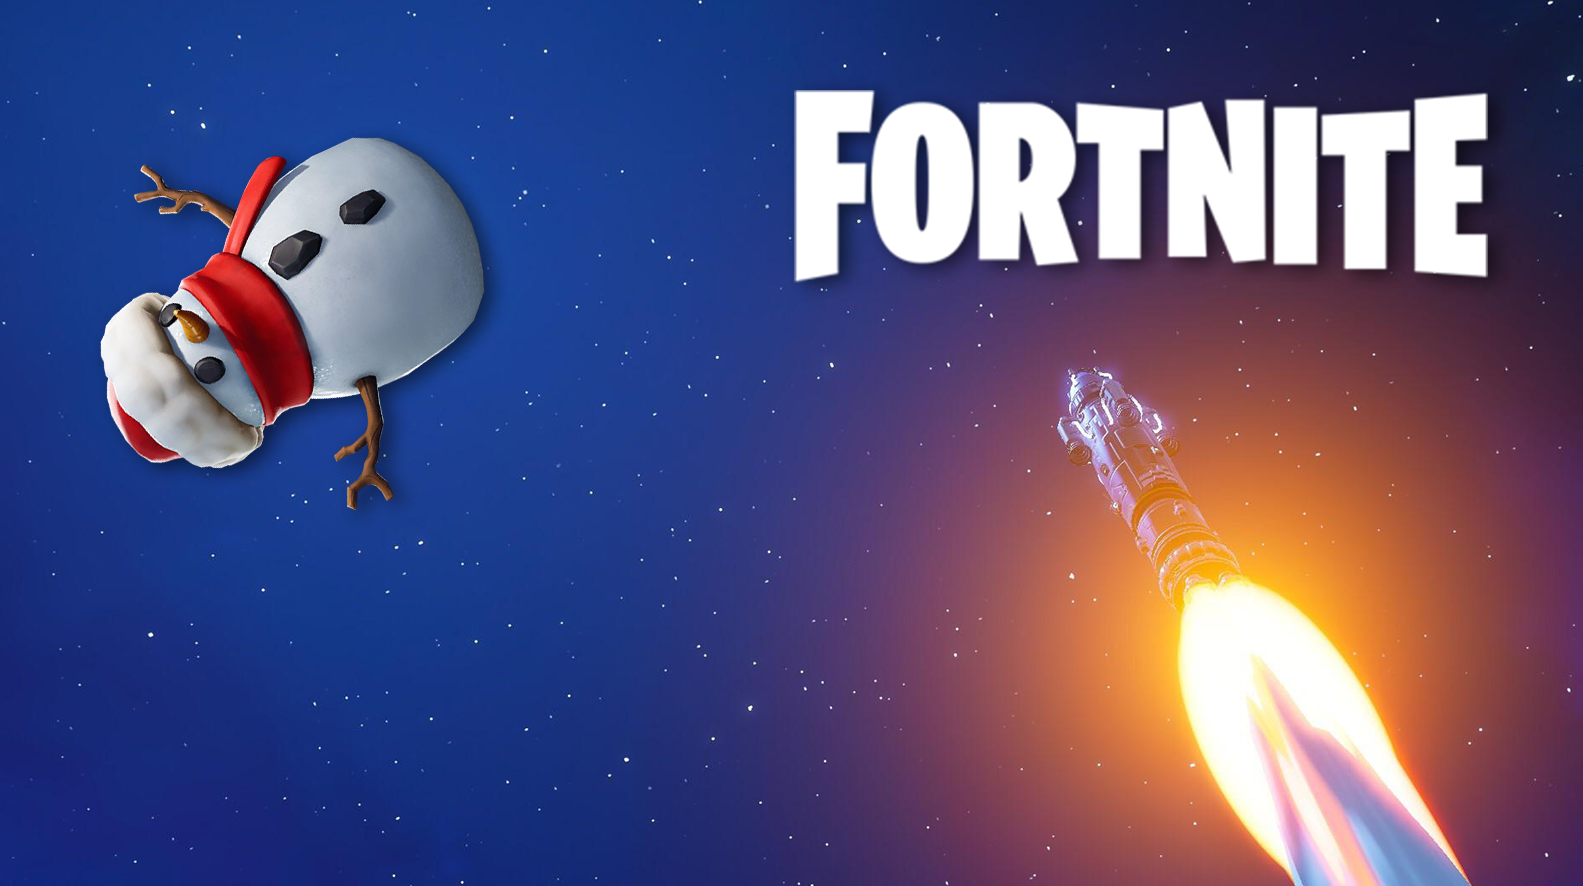 Epic Games - Fortnite